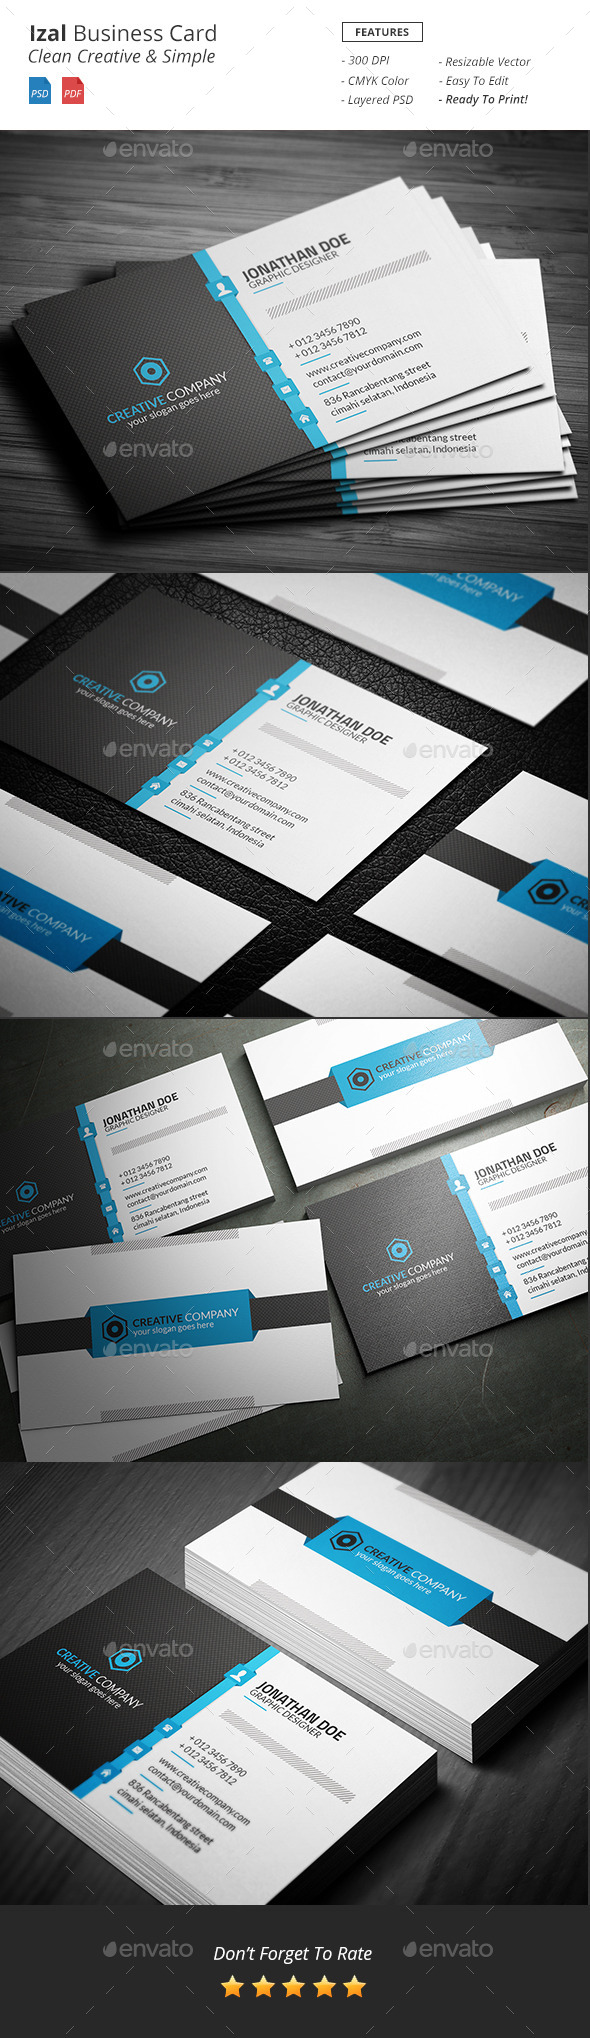 Izal - Clean Creative Business Card - Creative Business Cards